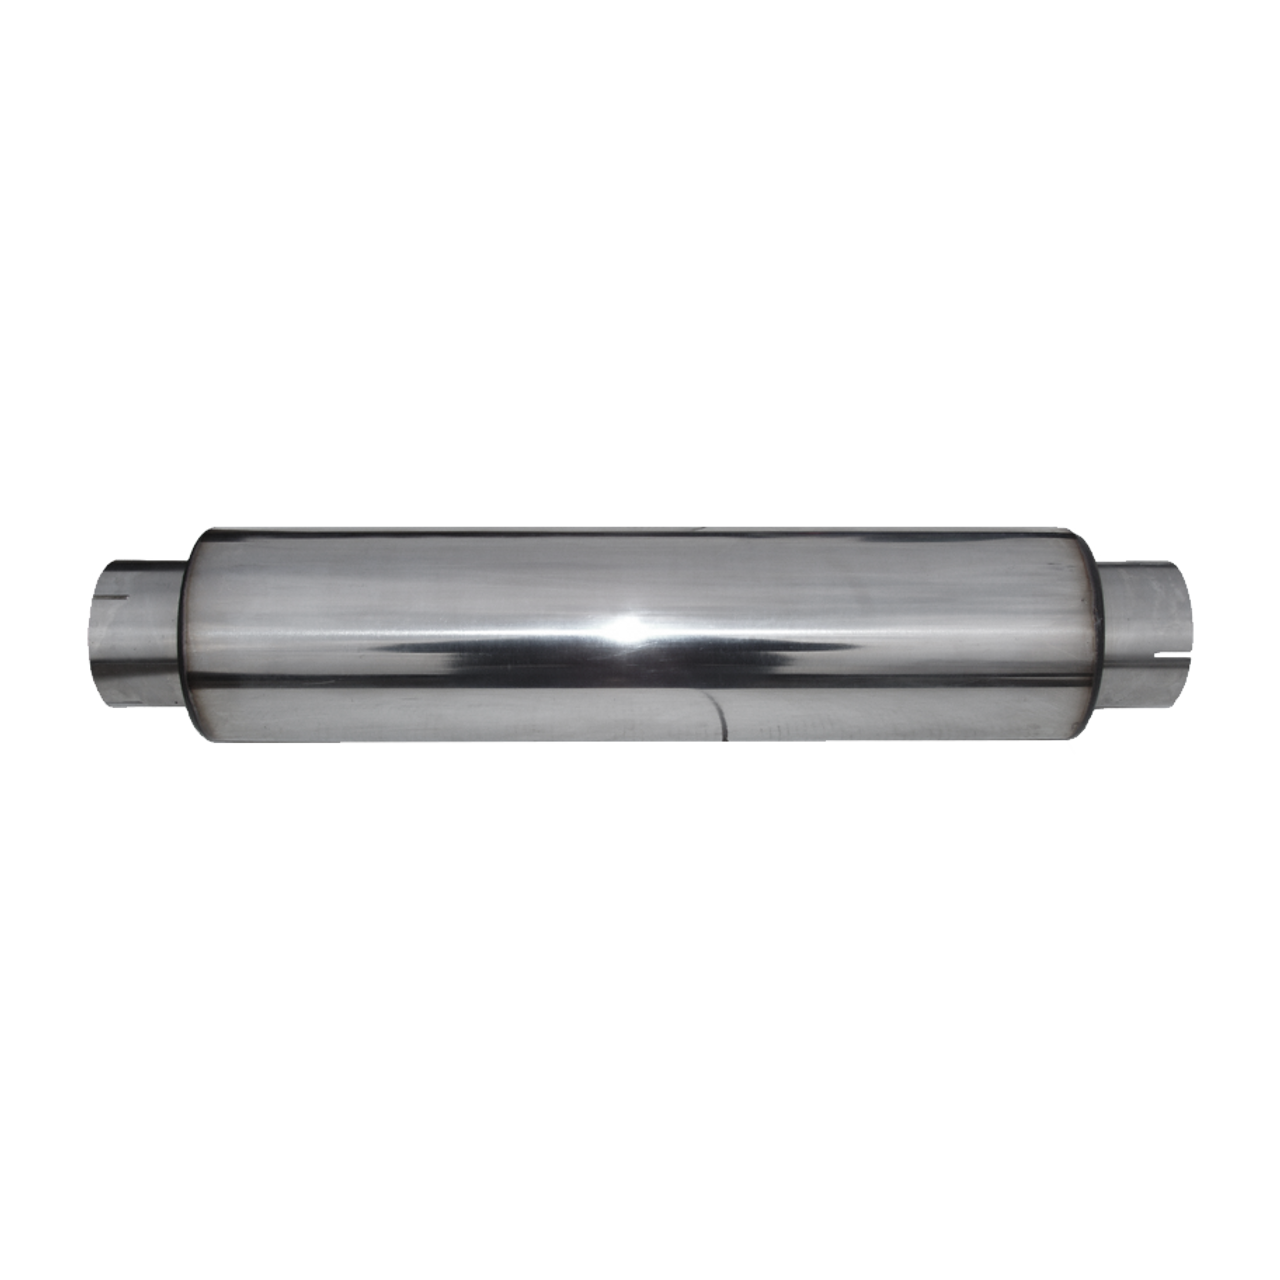 """MBRP Universal T304 Stainless Steel Muffler Delete Pipe 4/"""" In//4/"""" Out//30/"""" Long"""